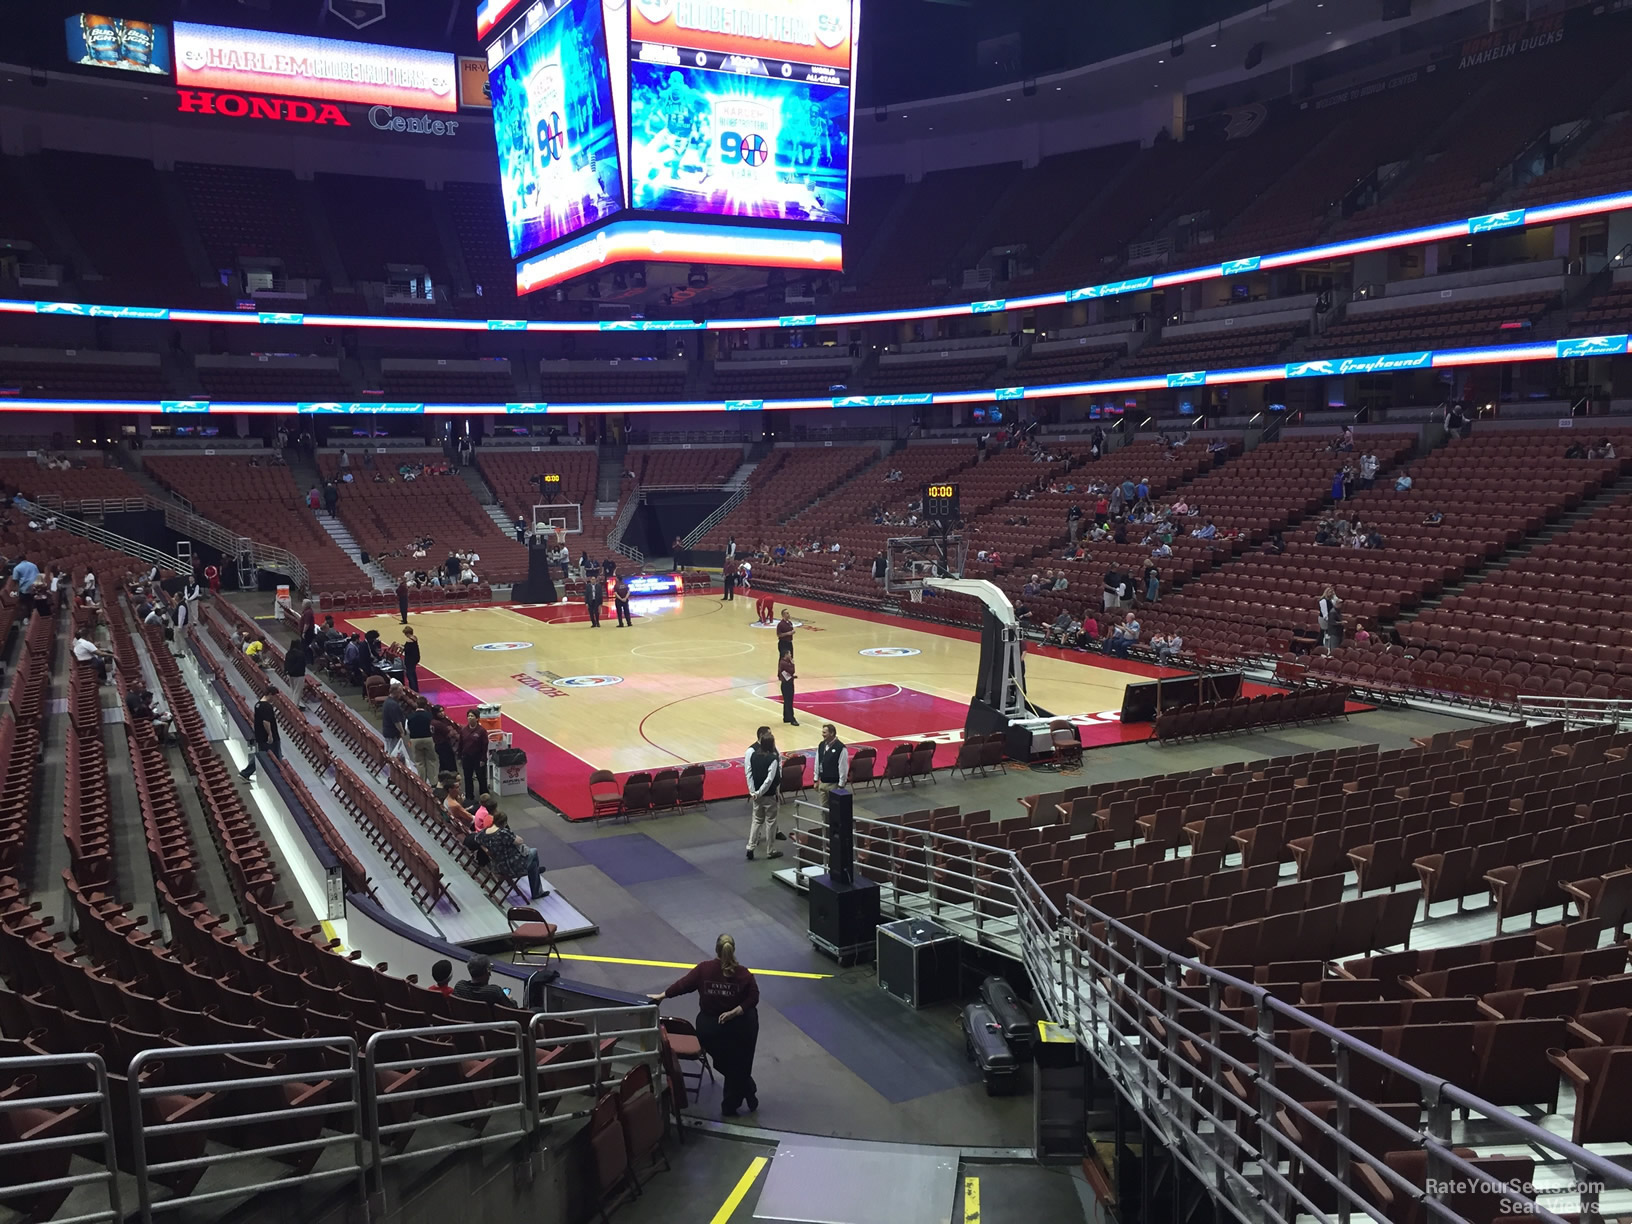 Basketball Seat View For Honda Center Section 203, Row P